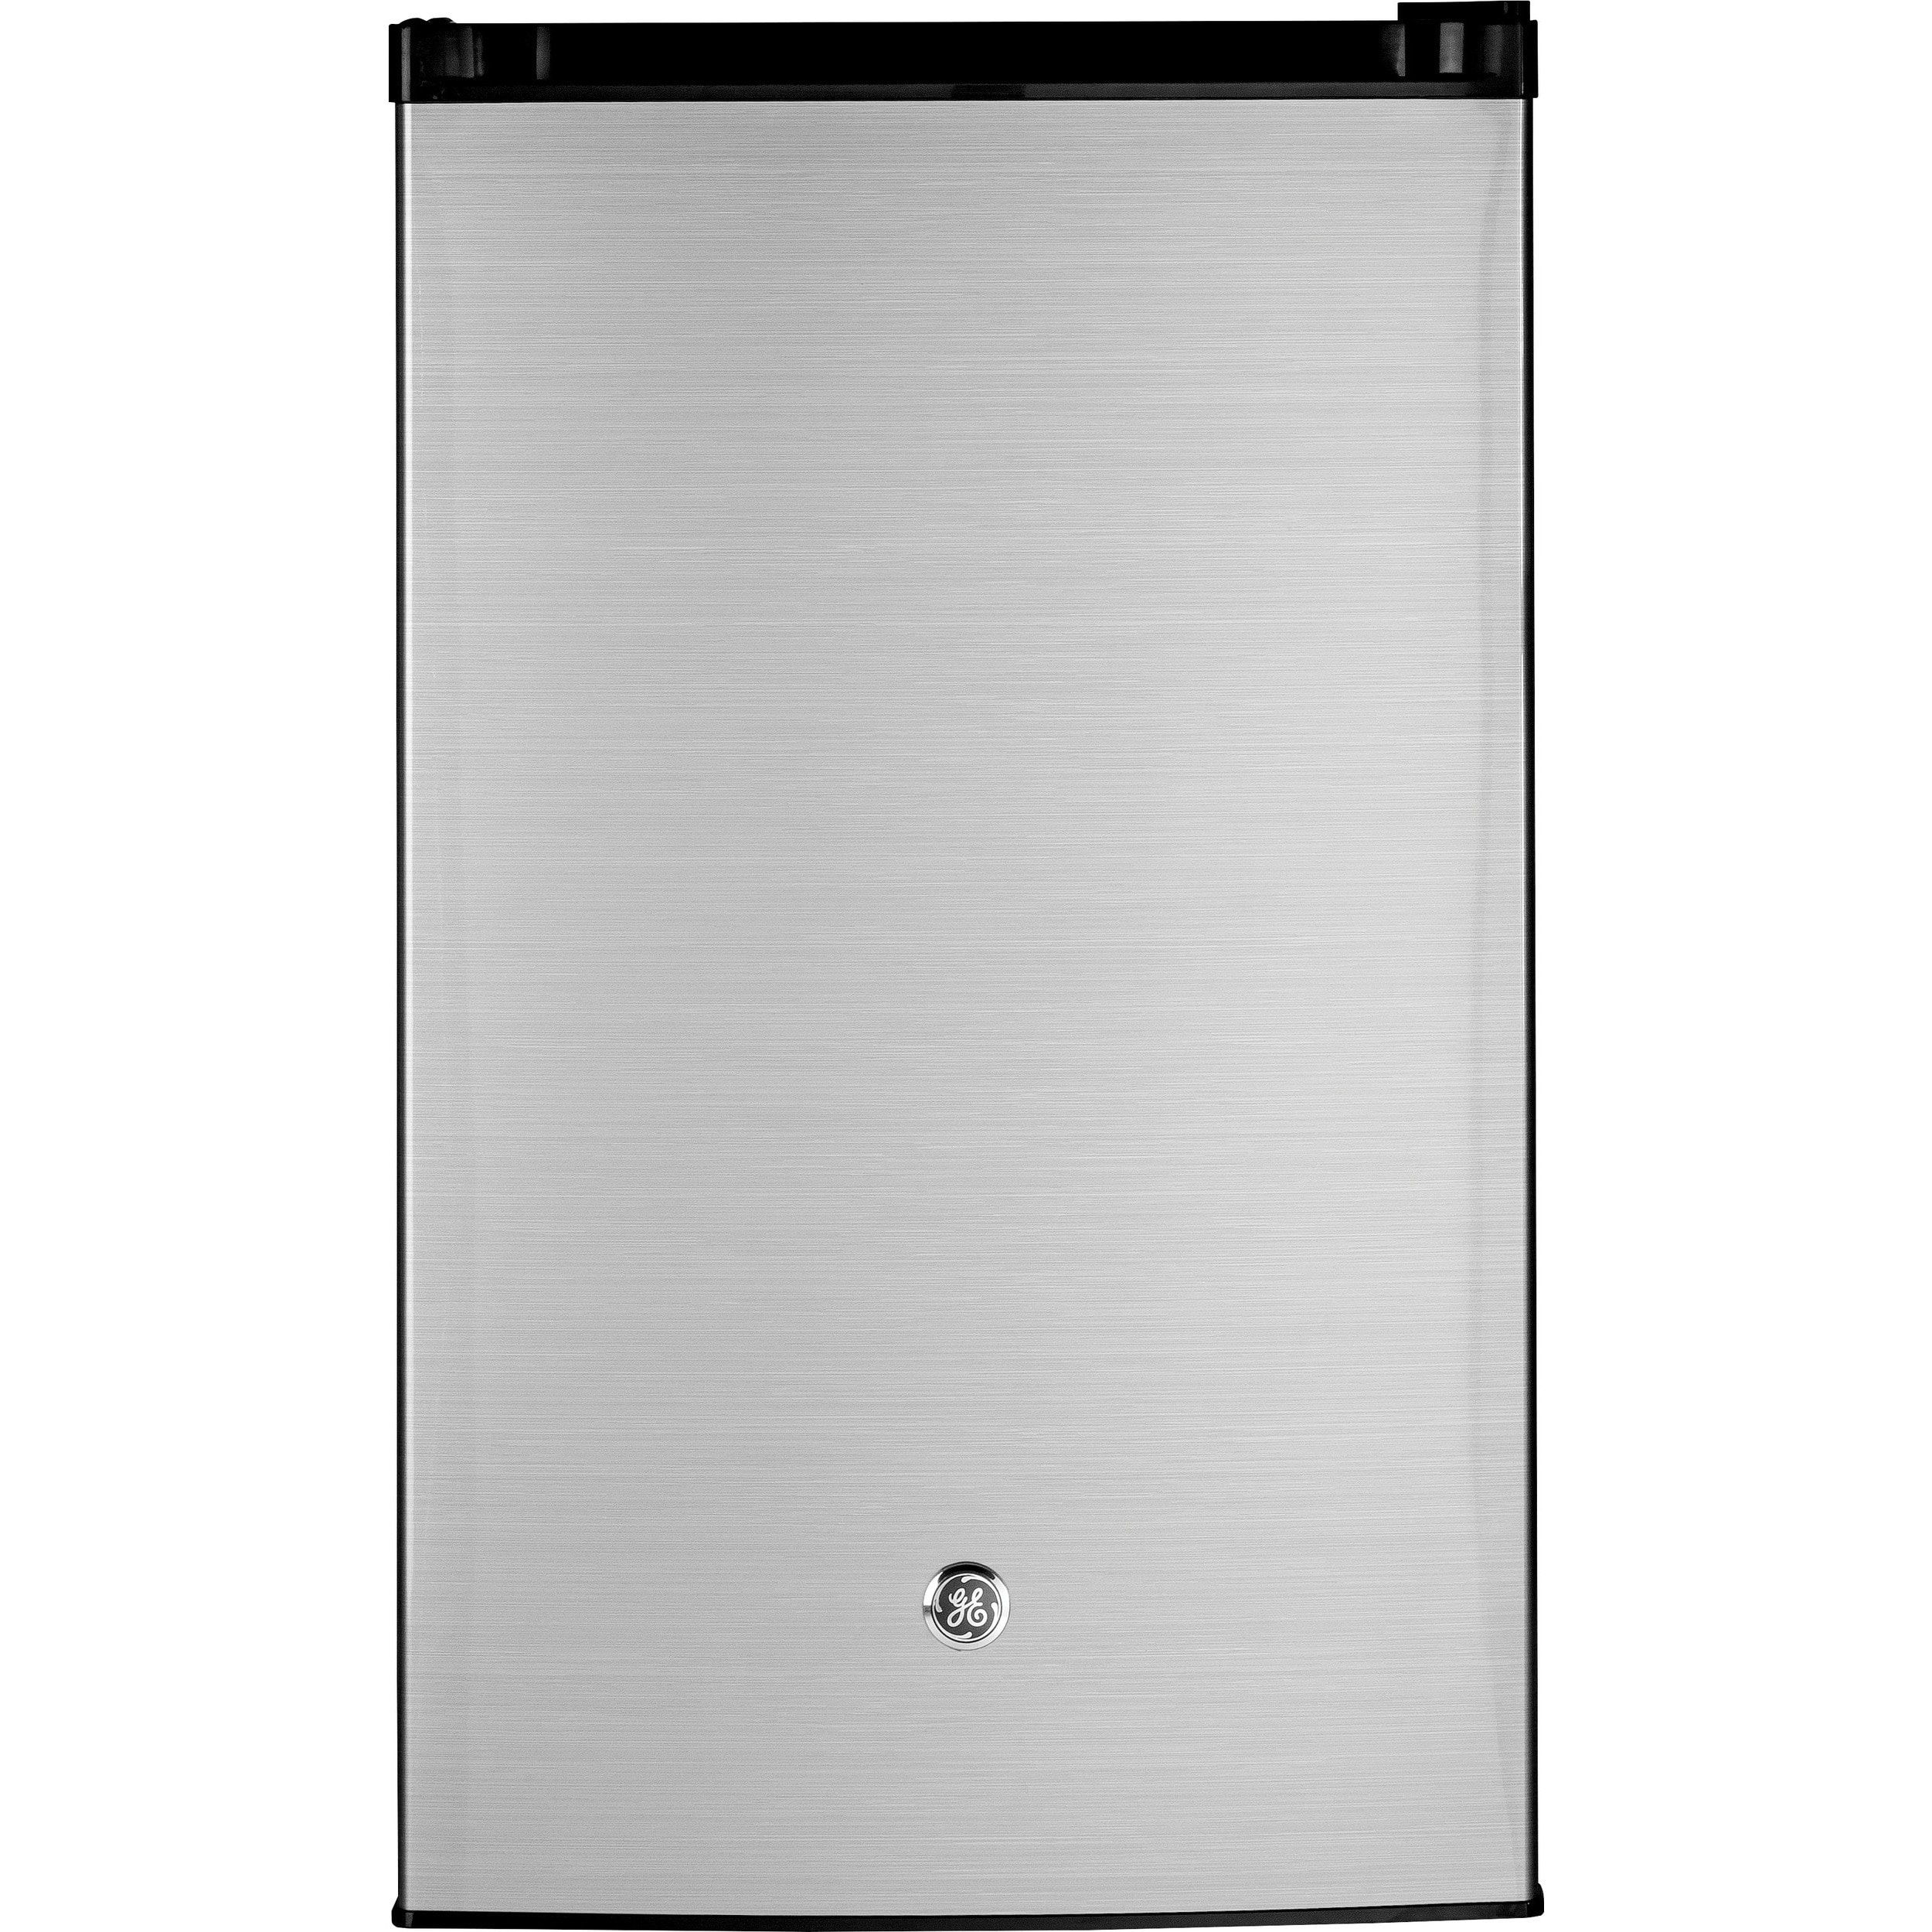 GE GE 4.4 Cu. Ft. Compact Refrigerator, Stainless Steel (...